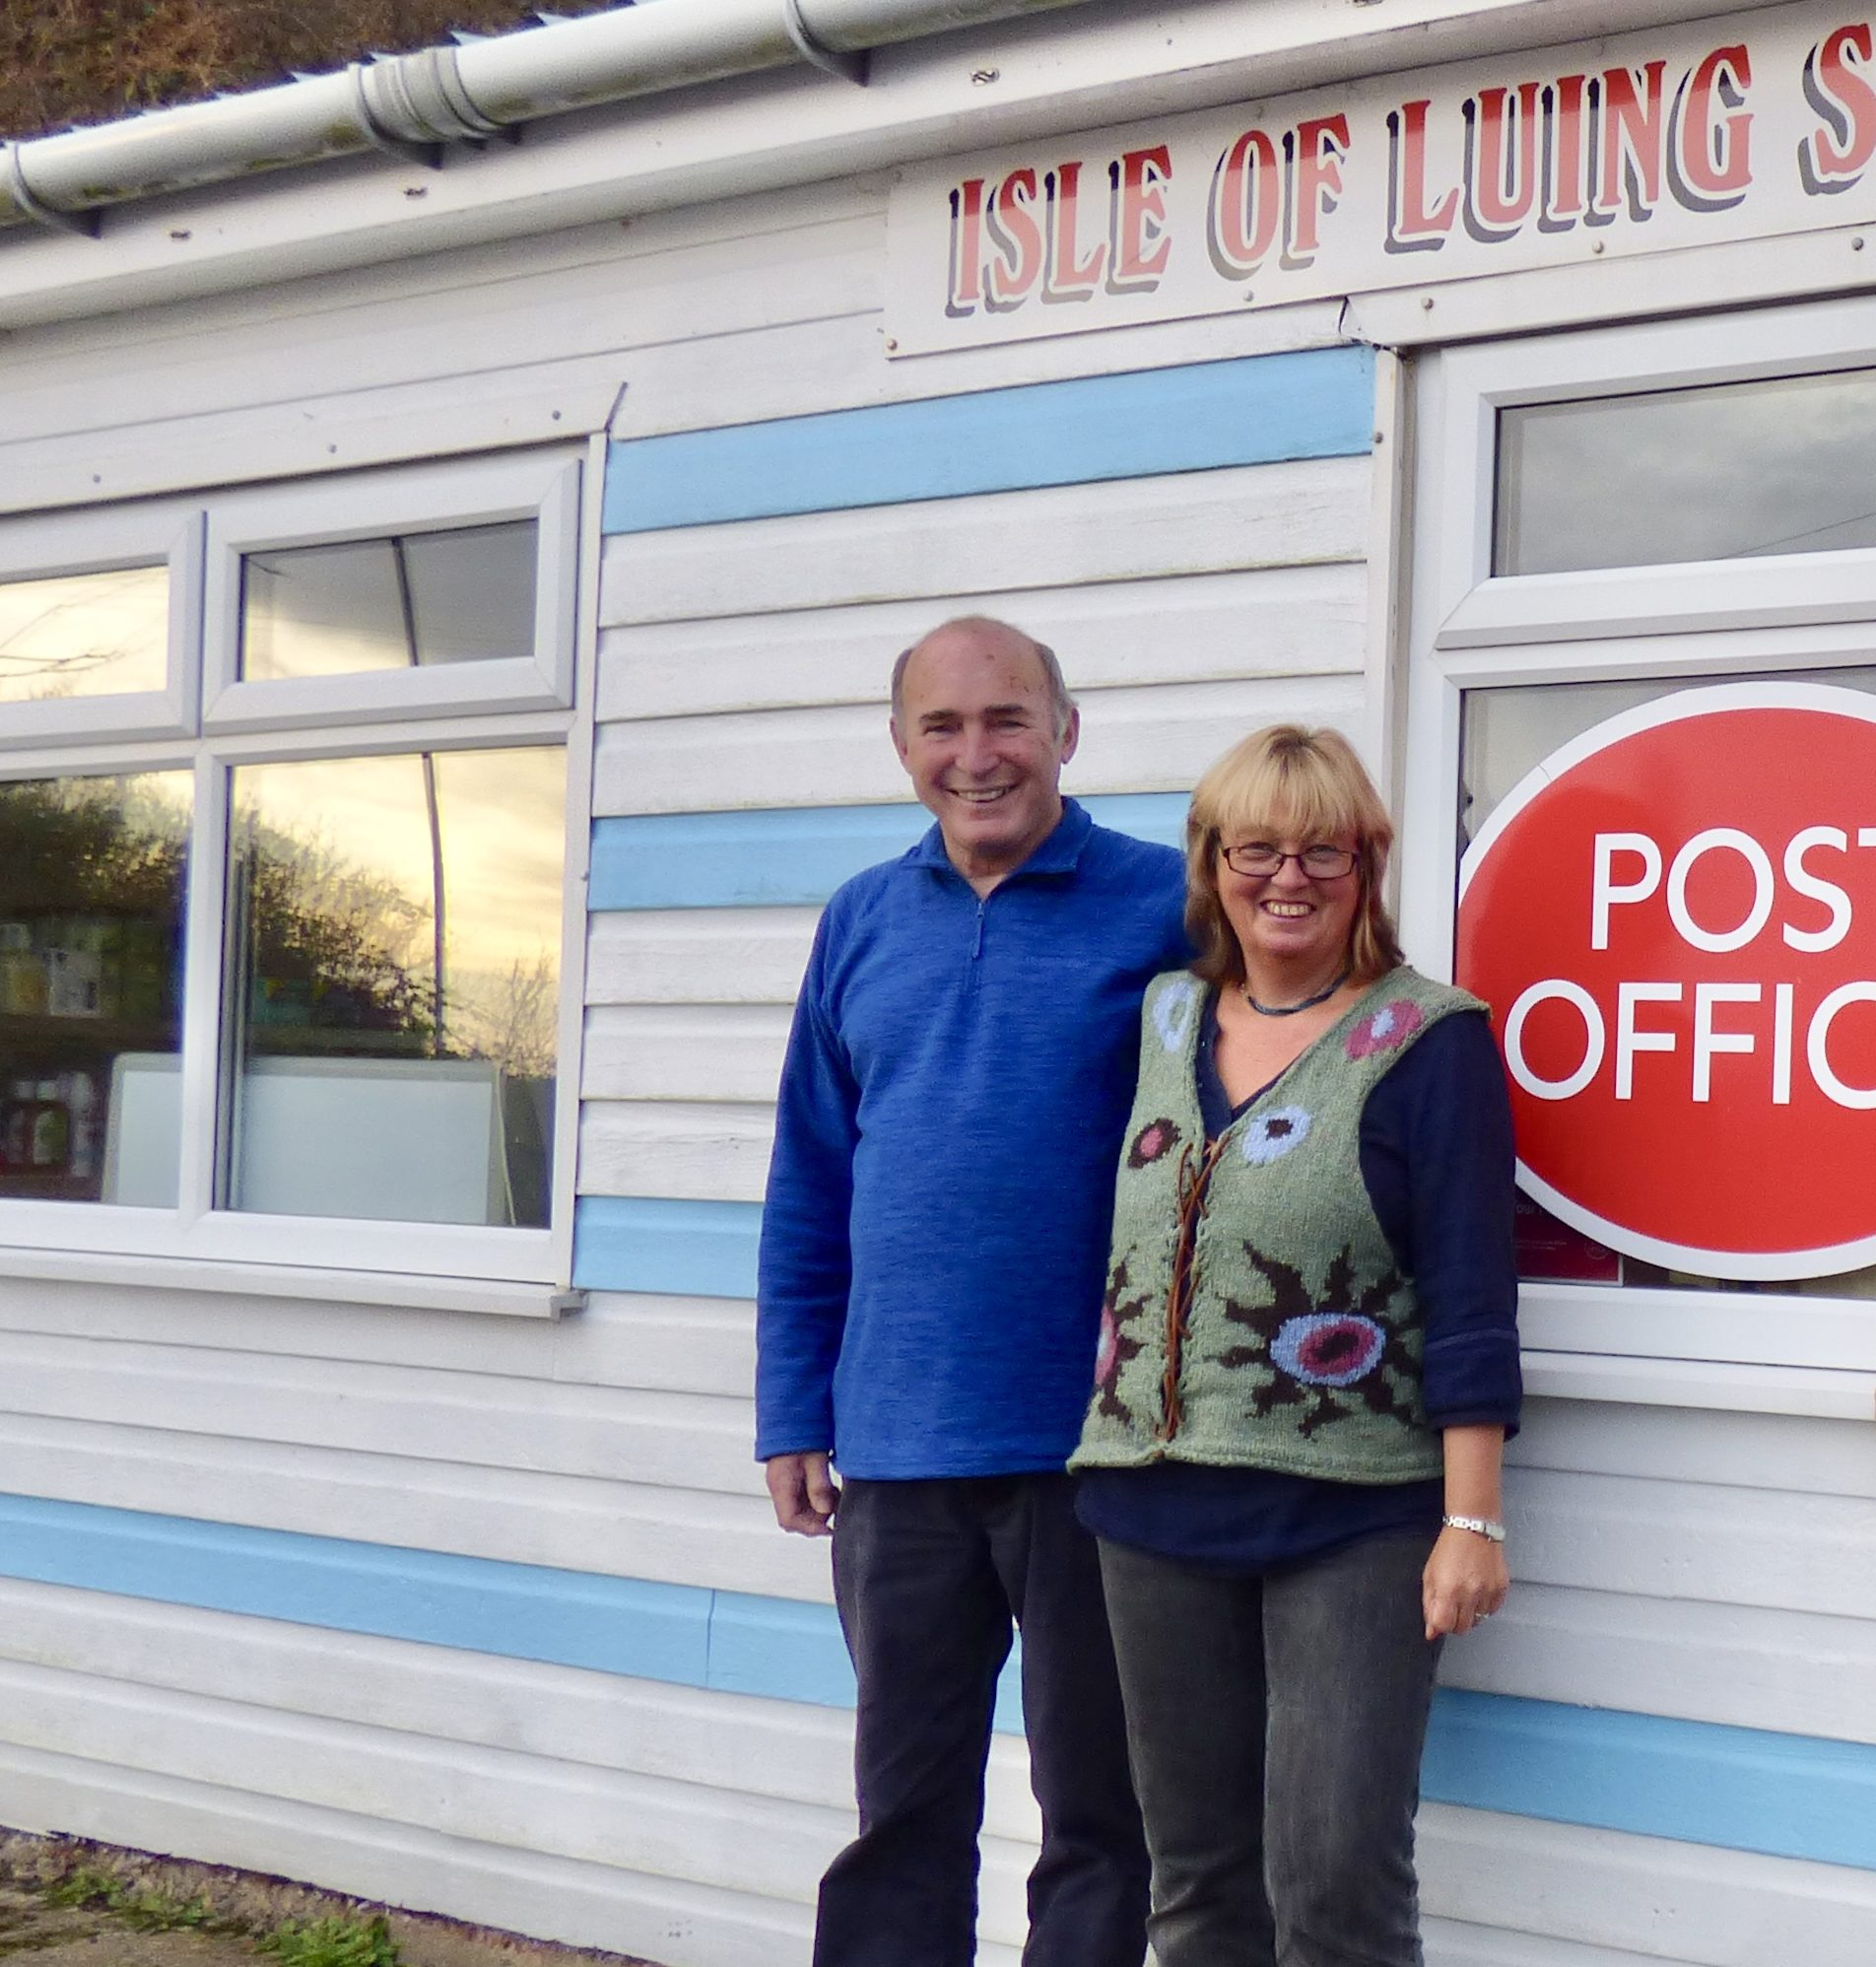 Birgit Whitmore and Norman Bissell will run the post office on Luing.